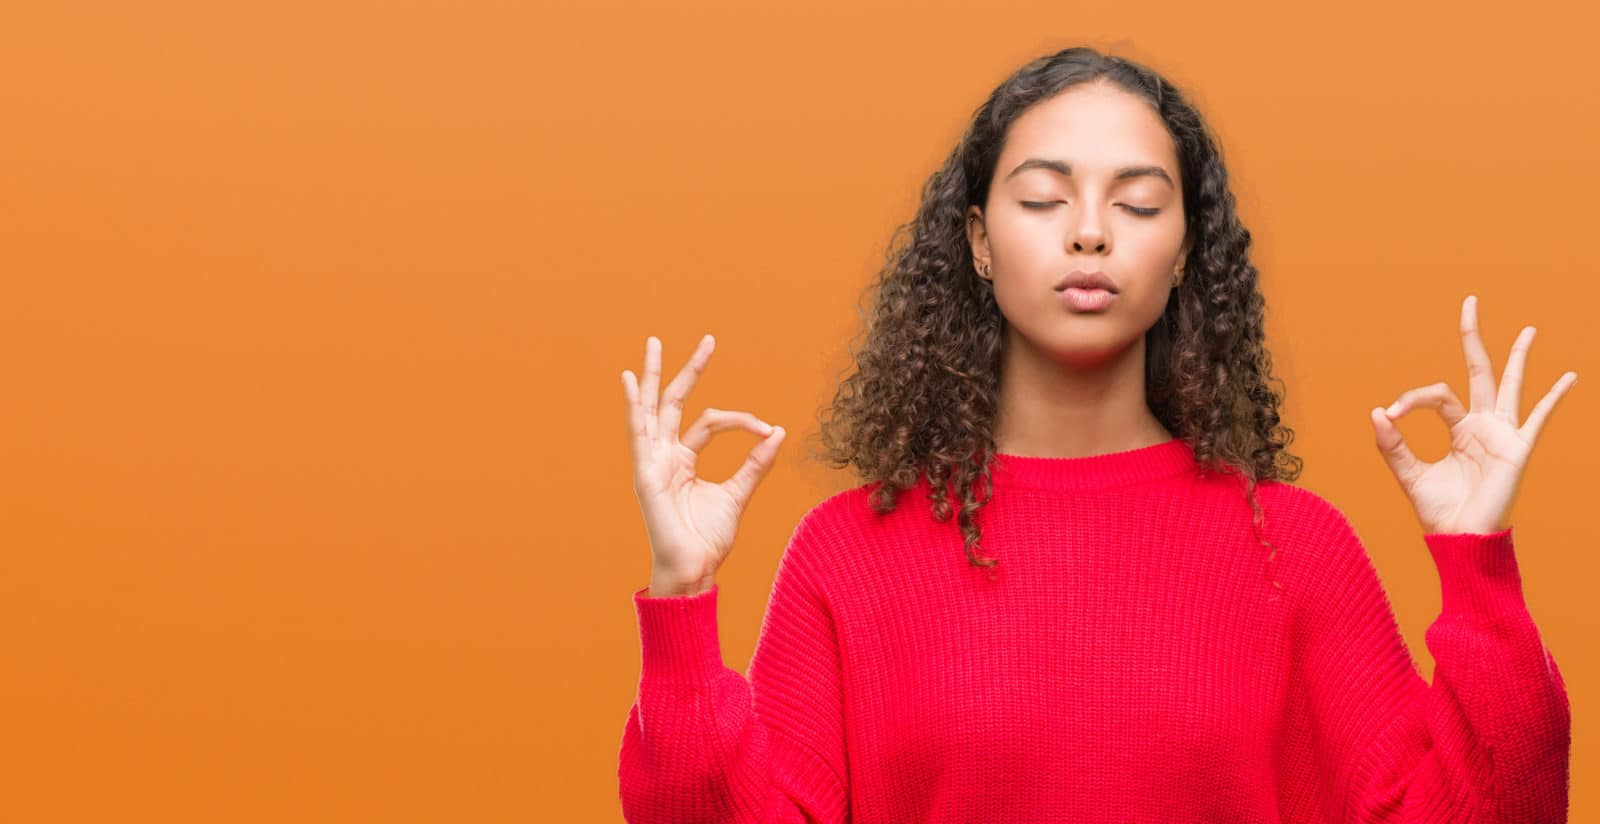 5 Tips and Tricks for Natural Anxiety Relief